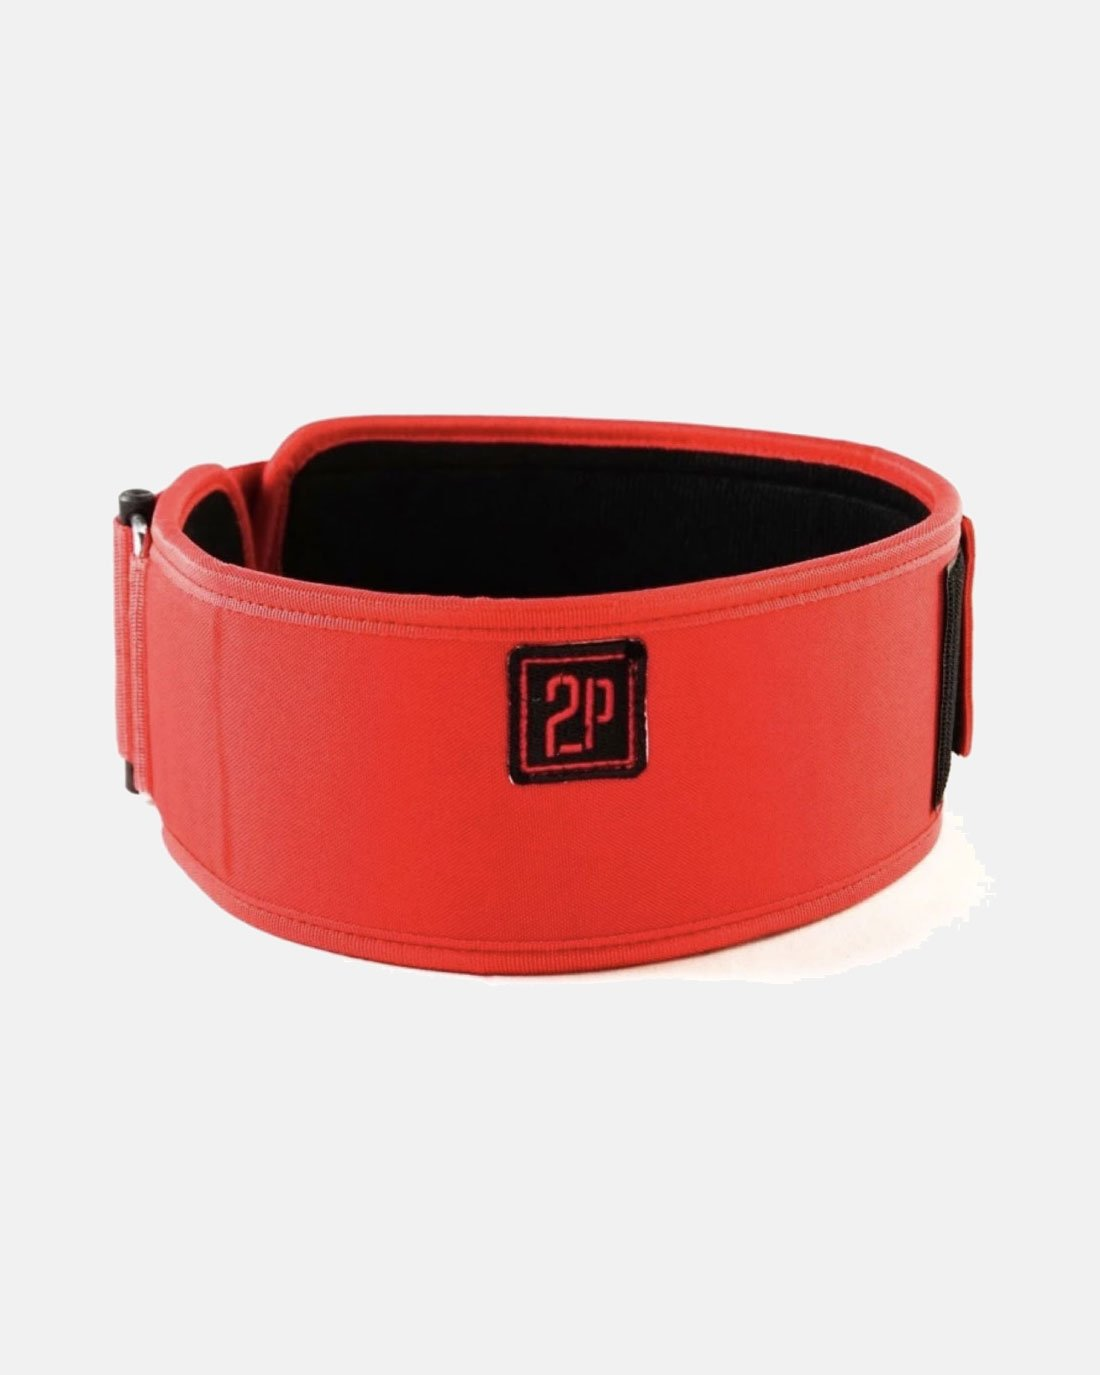 Red Kilo Weightlifting Belt